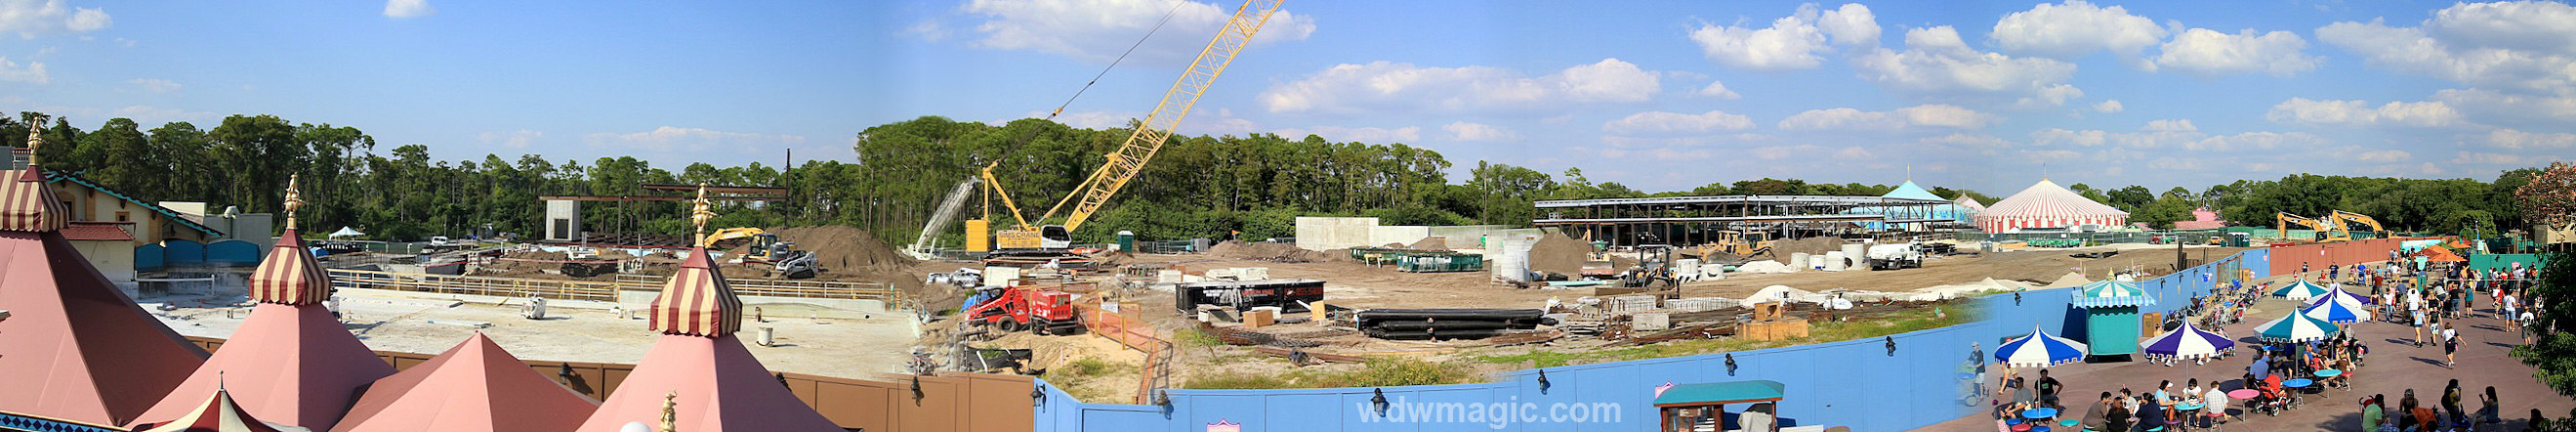 Panoramic view of construction site